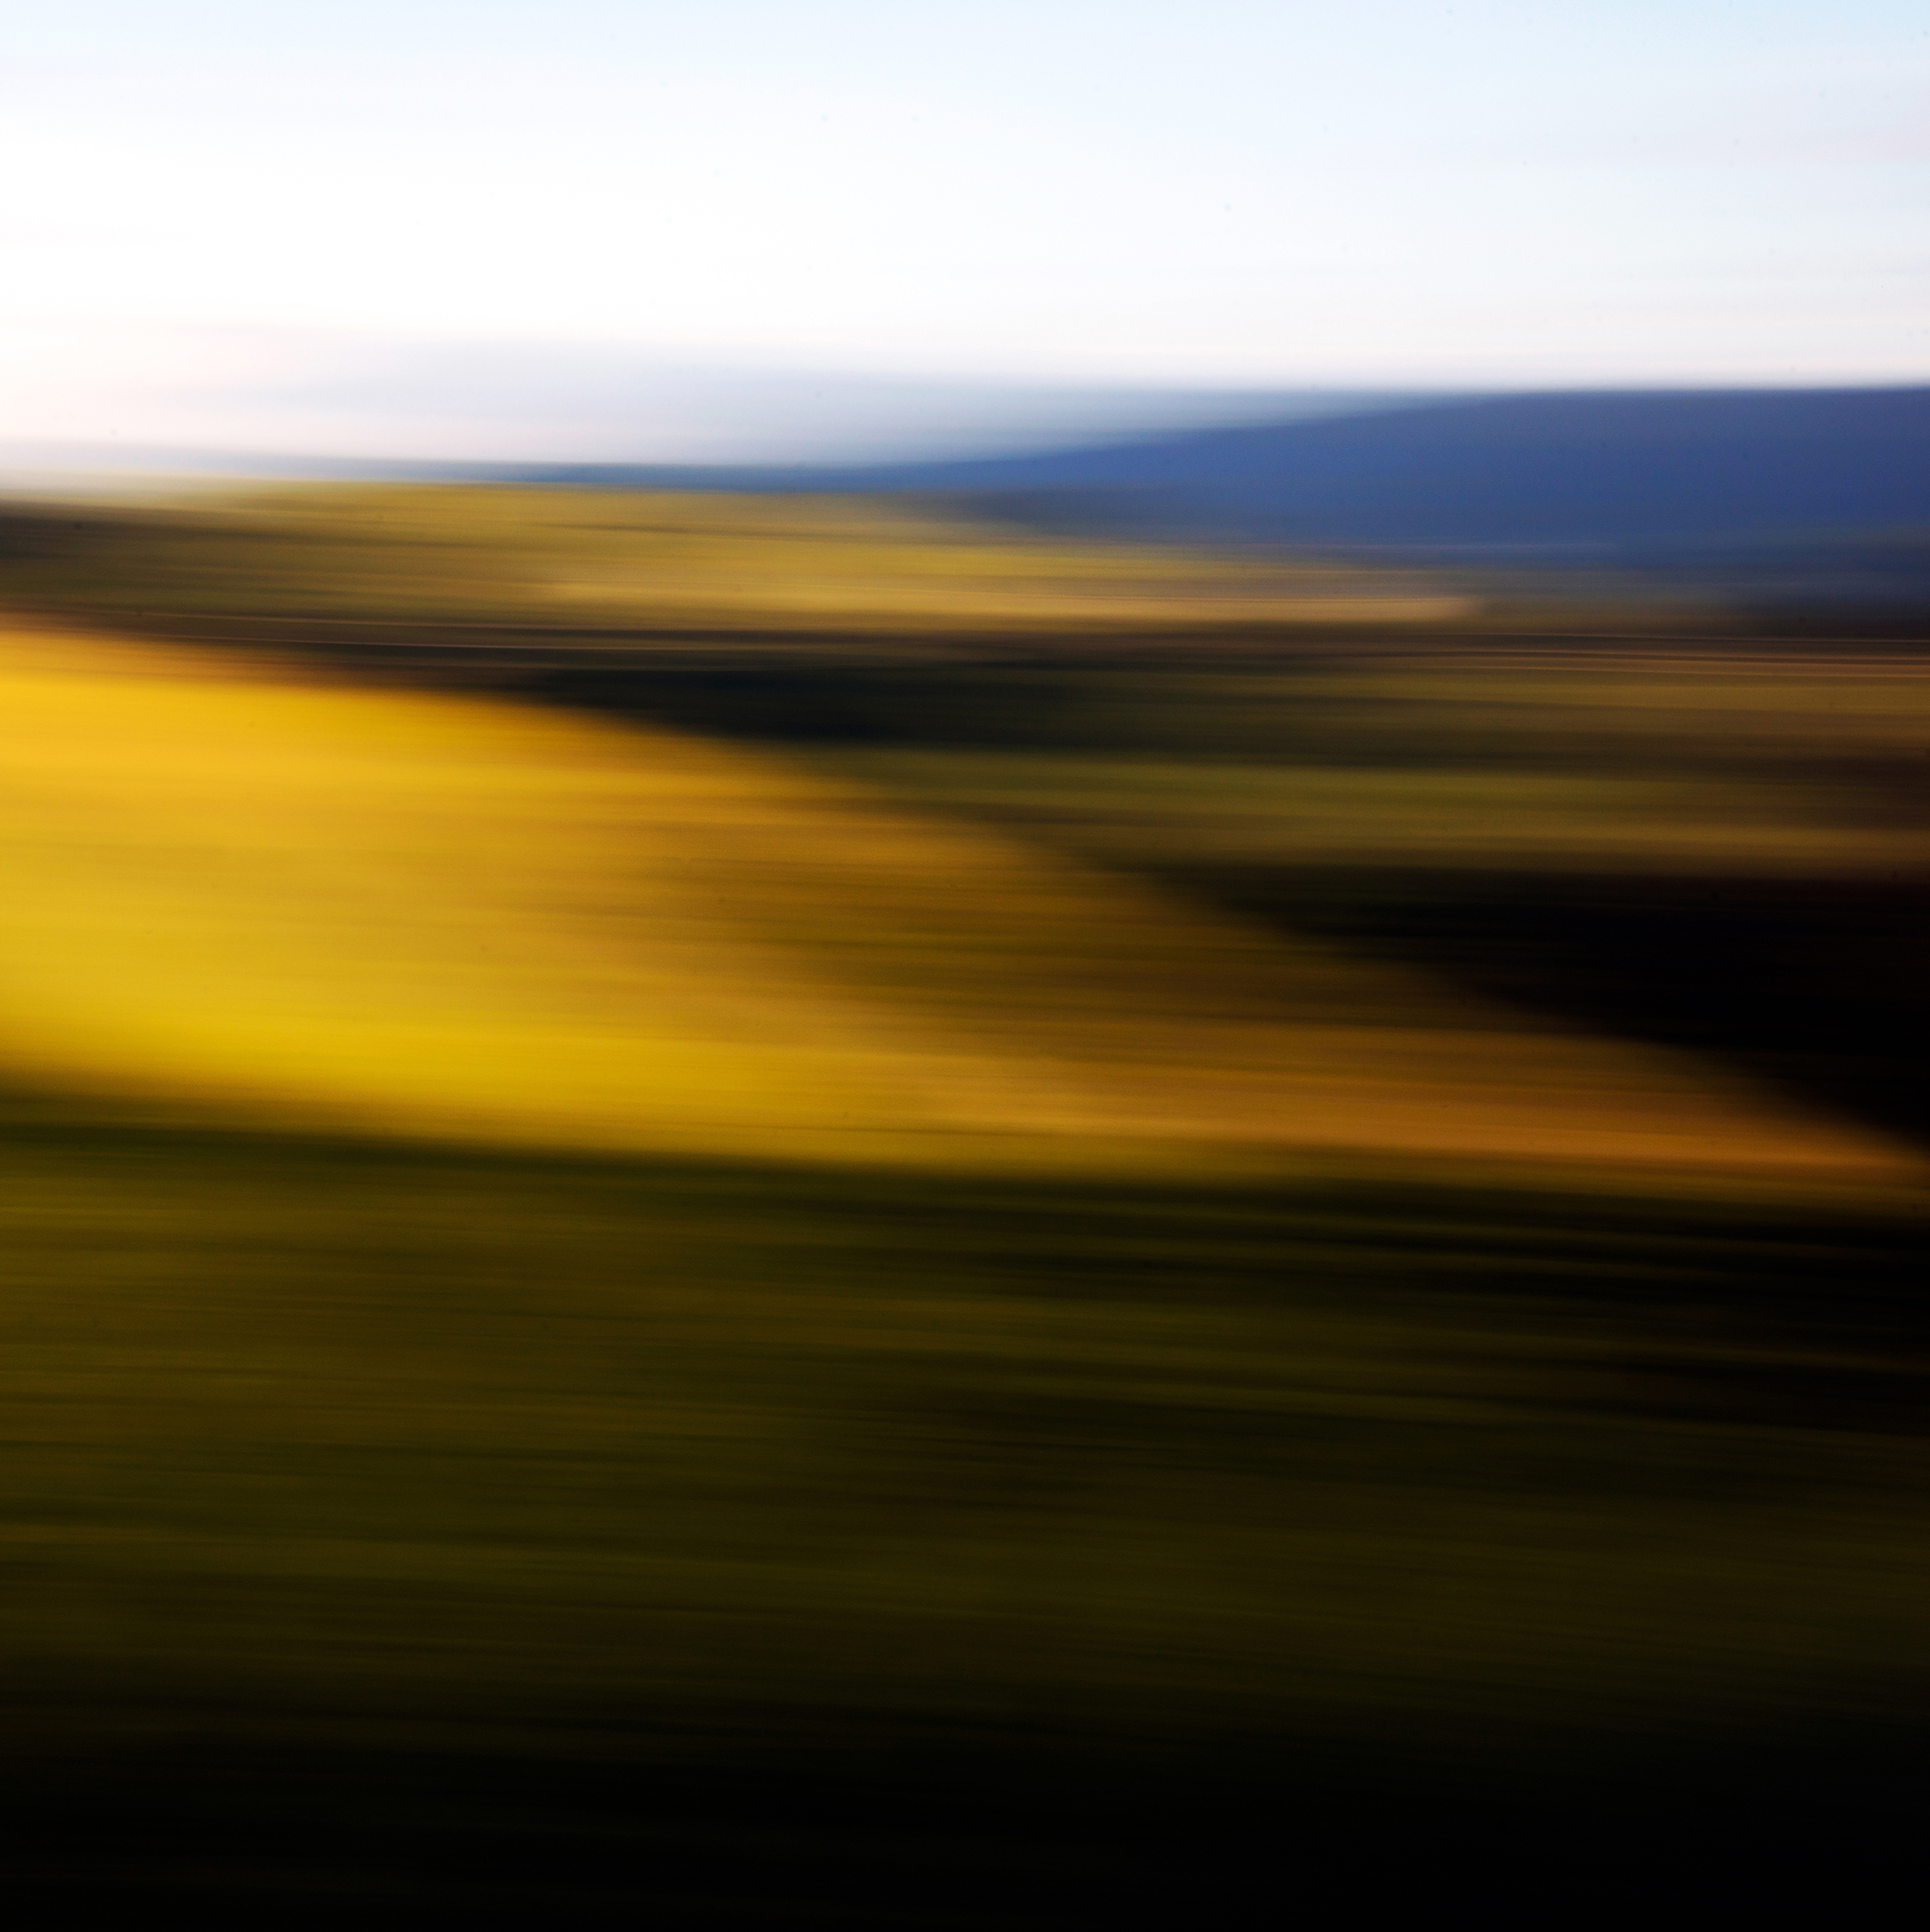 Landscape Abstracted